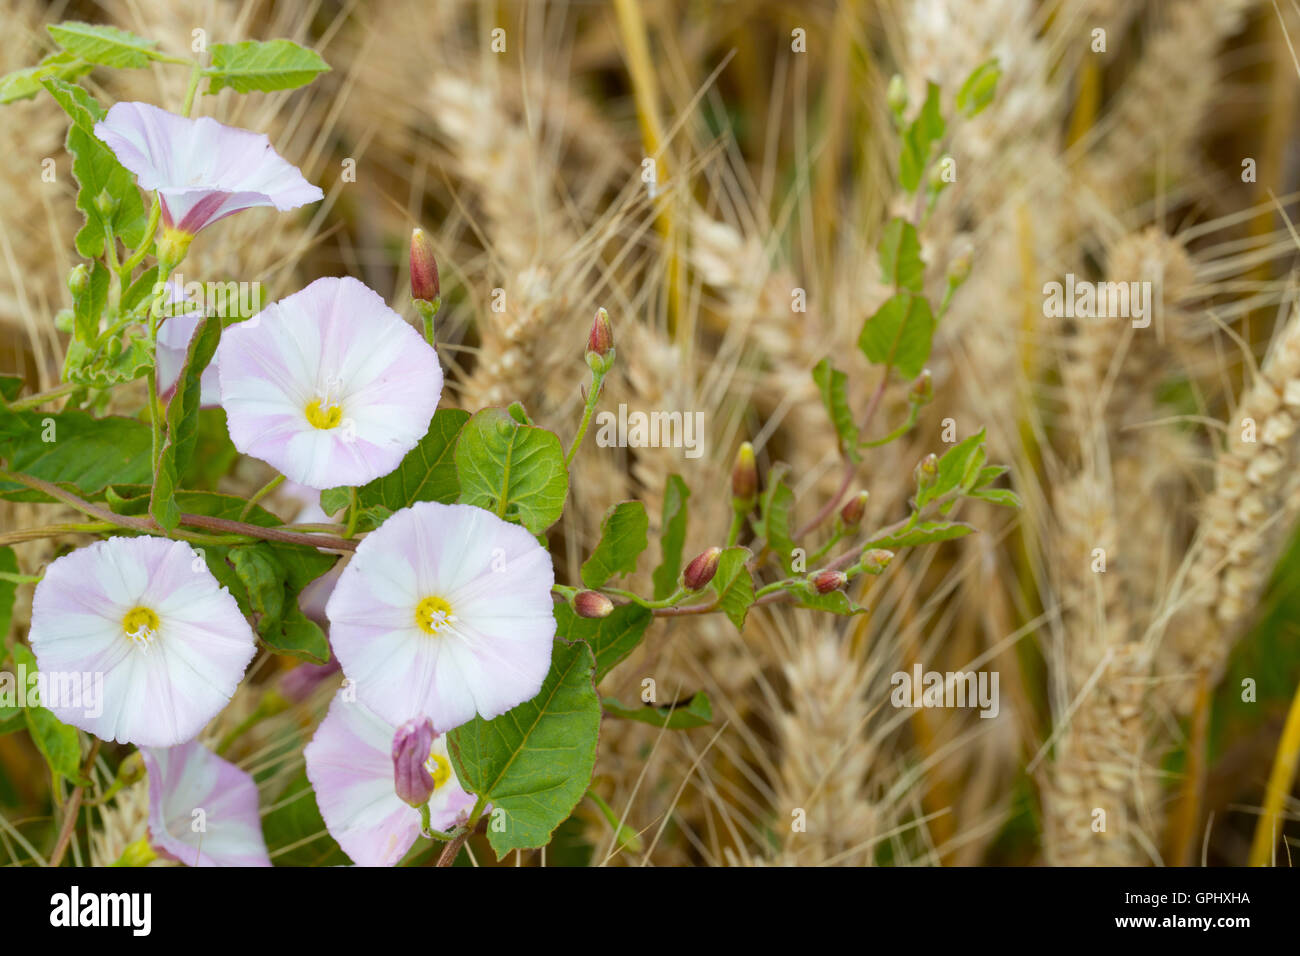 Field bindweed in wheat field - Stock Image